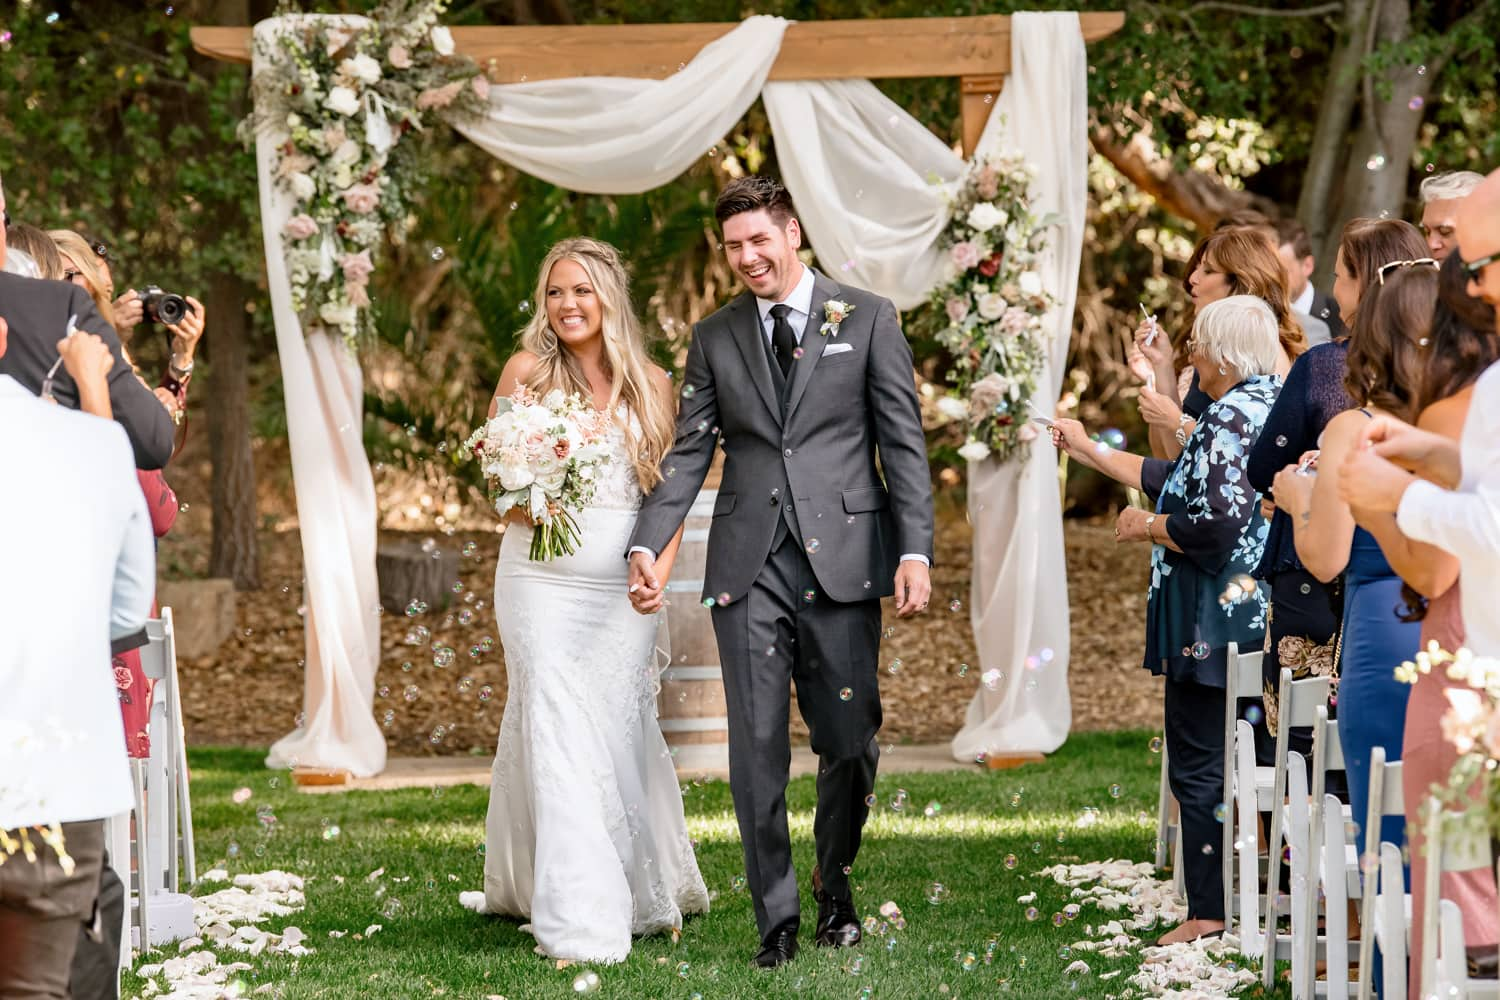 Bride and groom exiting wedding ceremony at The Stone House in Temecula